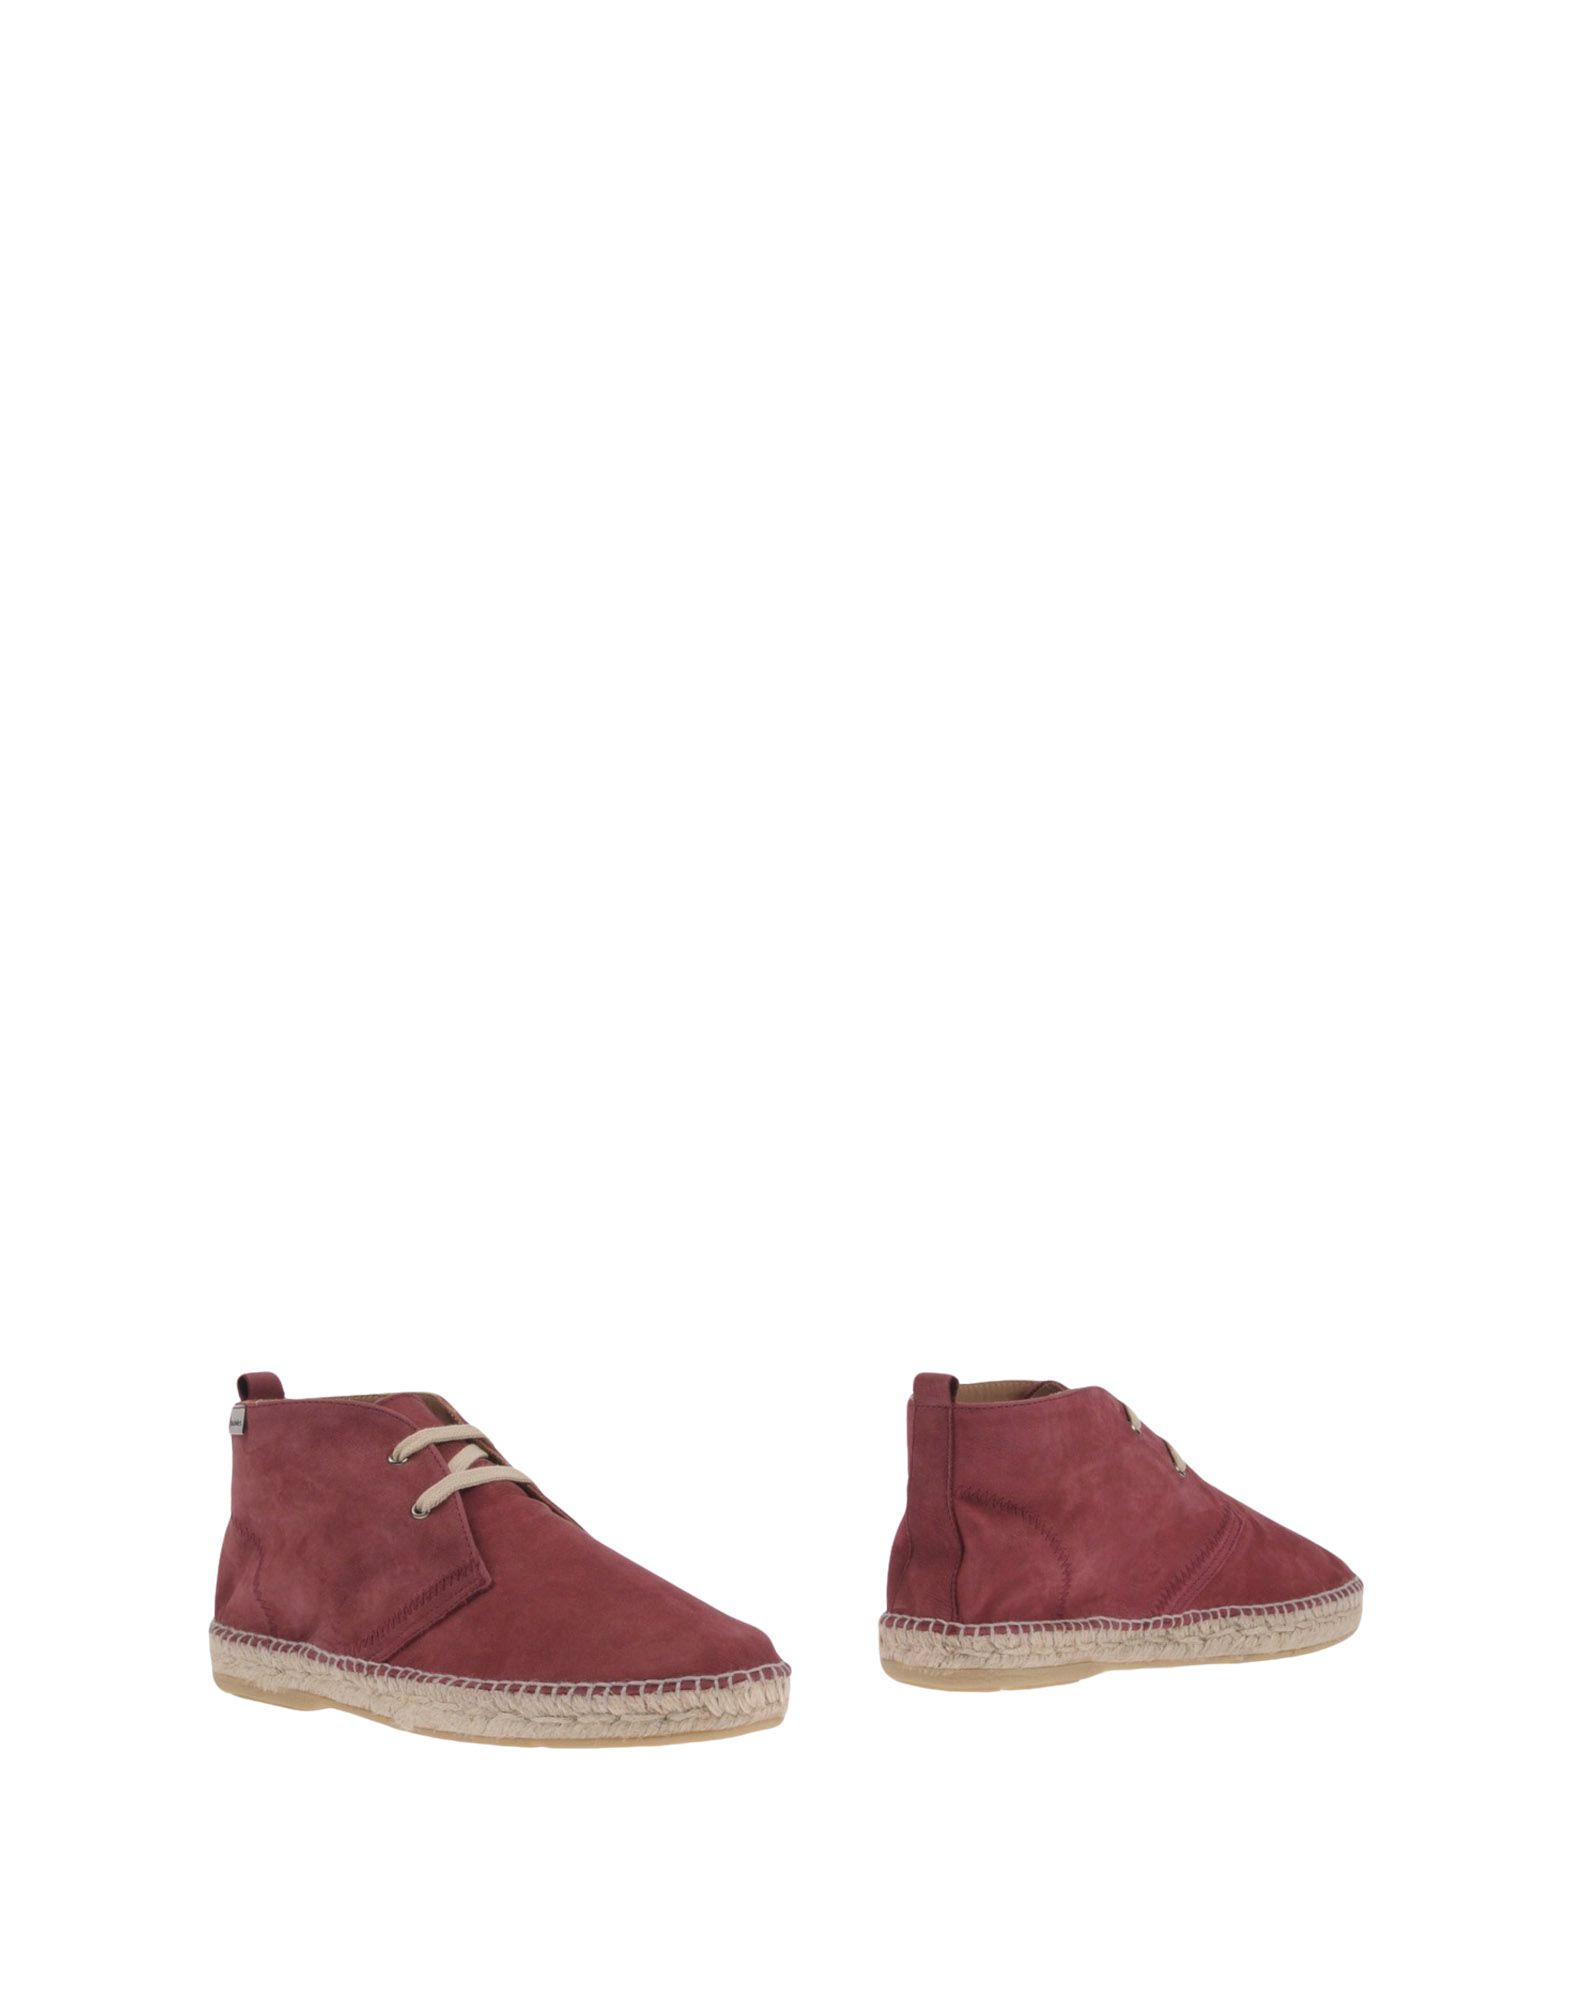 ESPADRILLES Boots in Maroon